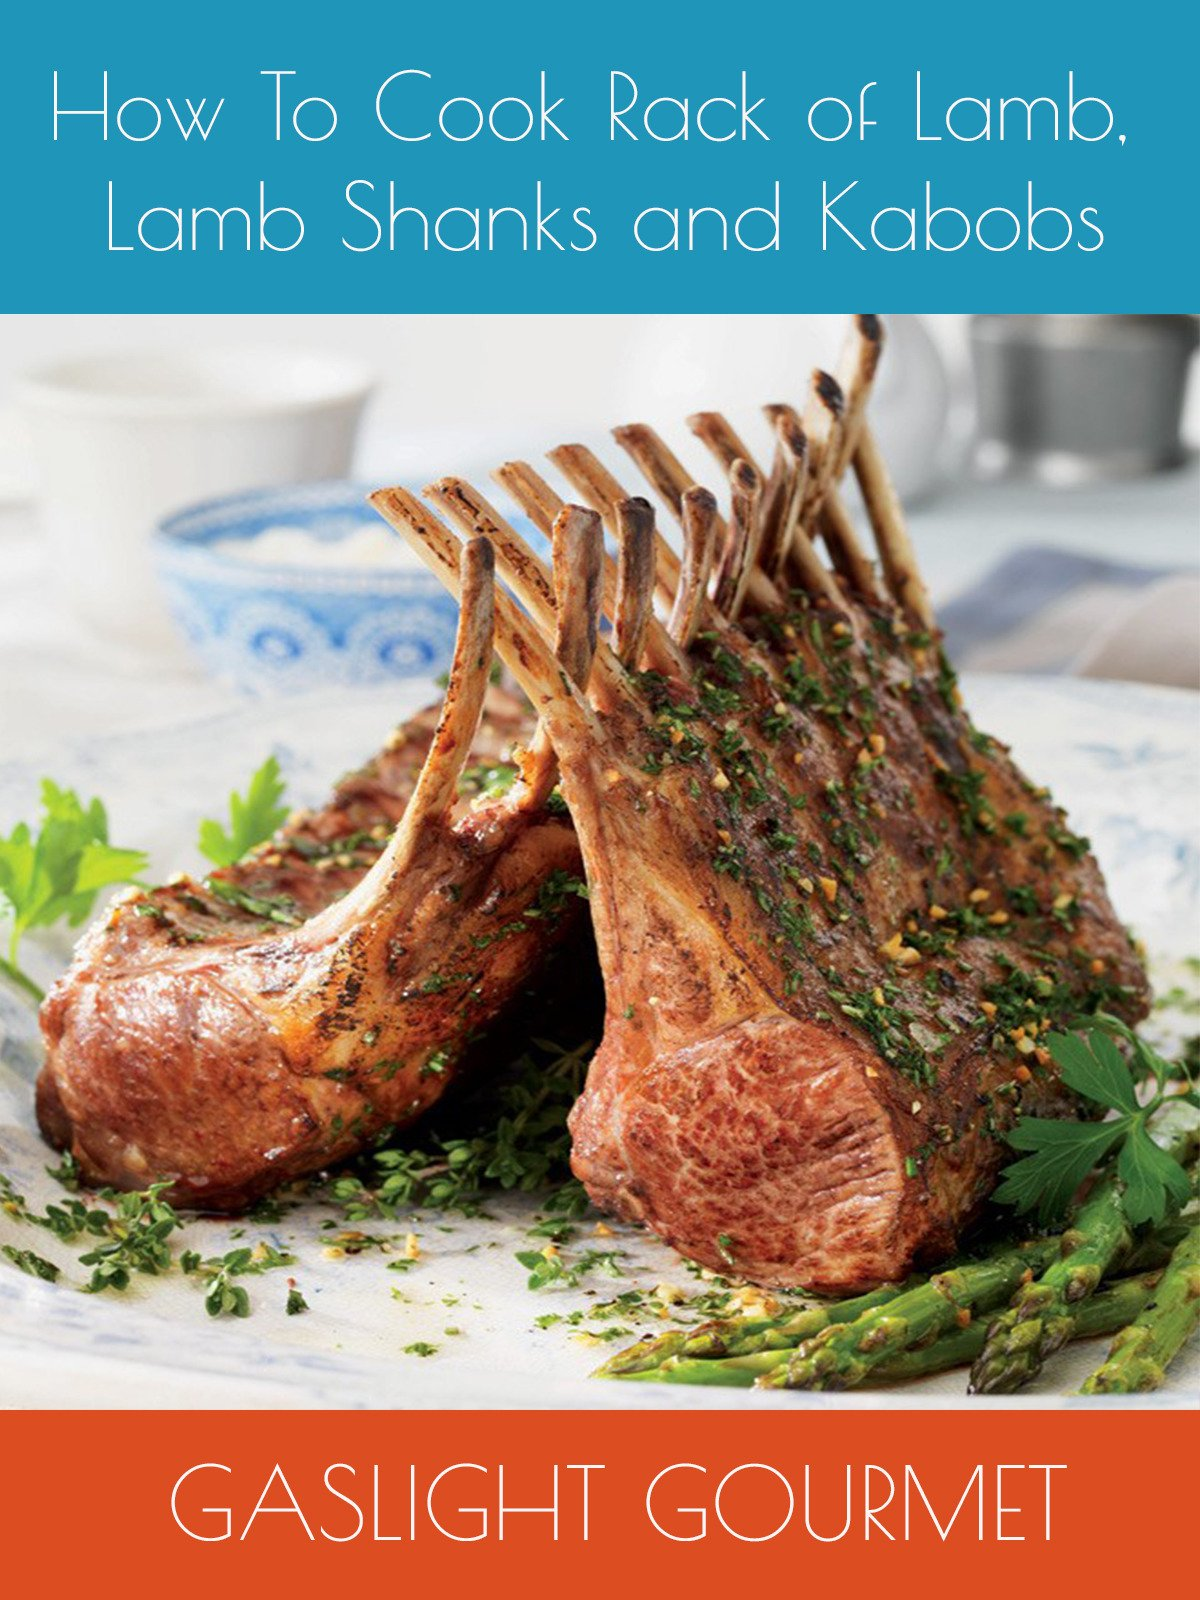 How To Cook Rack of Lamb, Lamb Shanks and Kabobs on Amazon Prime Video UK